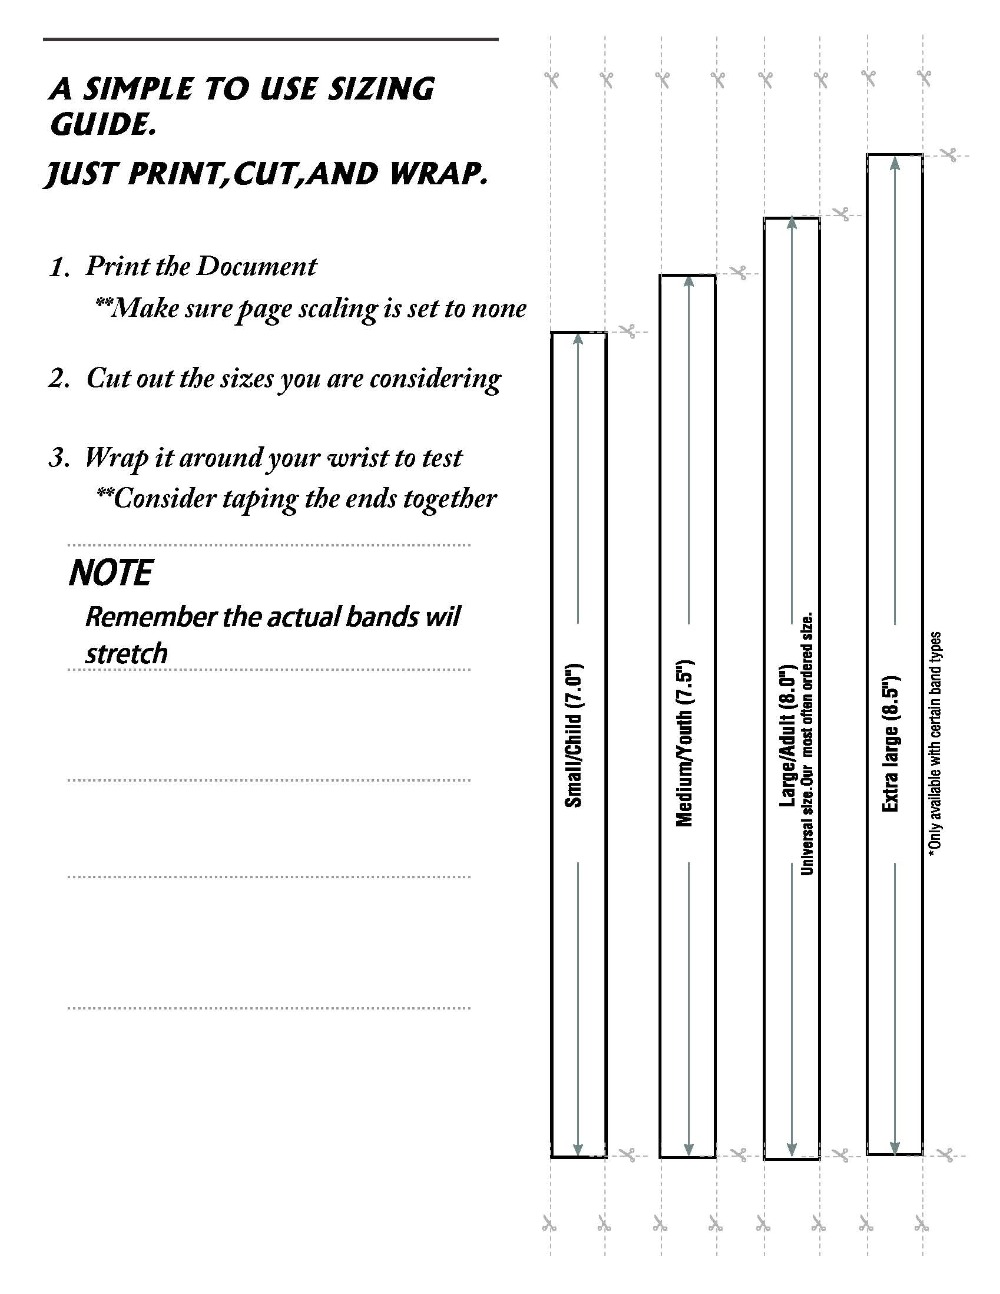 Wristbands-Print-and-Cut-Wristband-Size-Guide